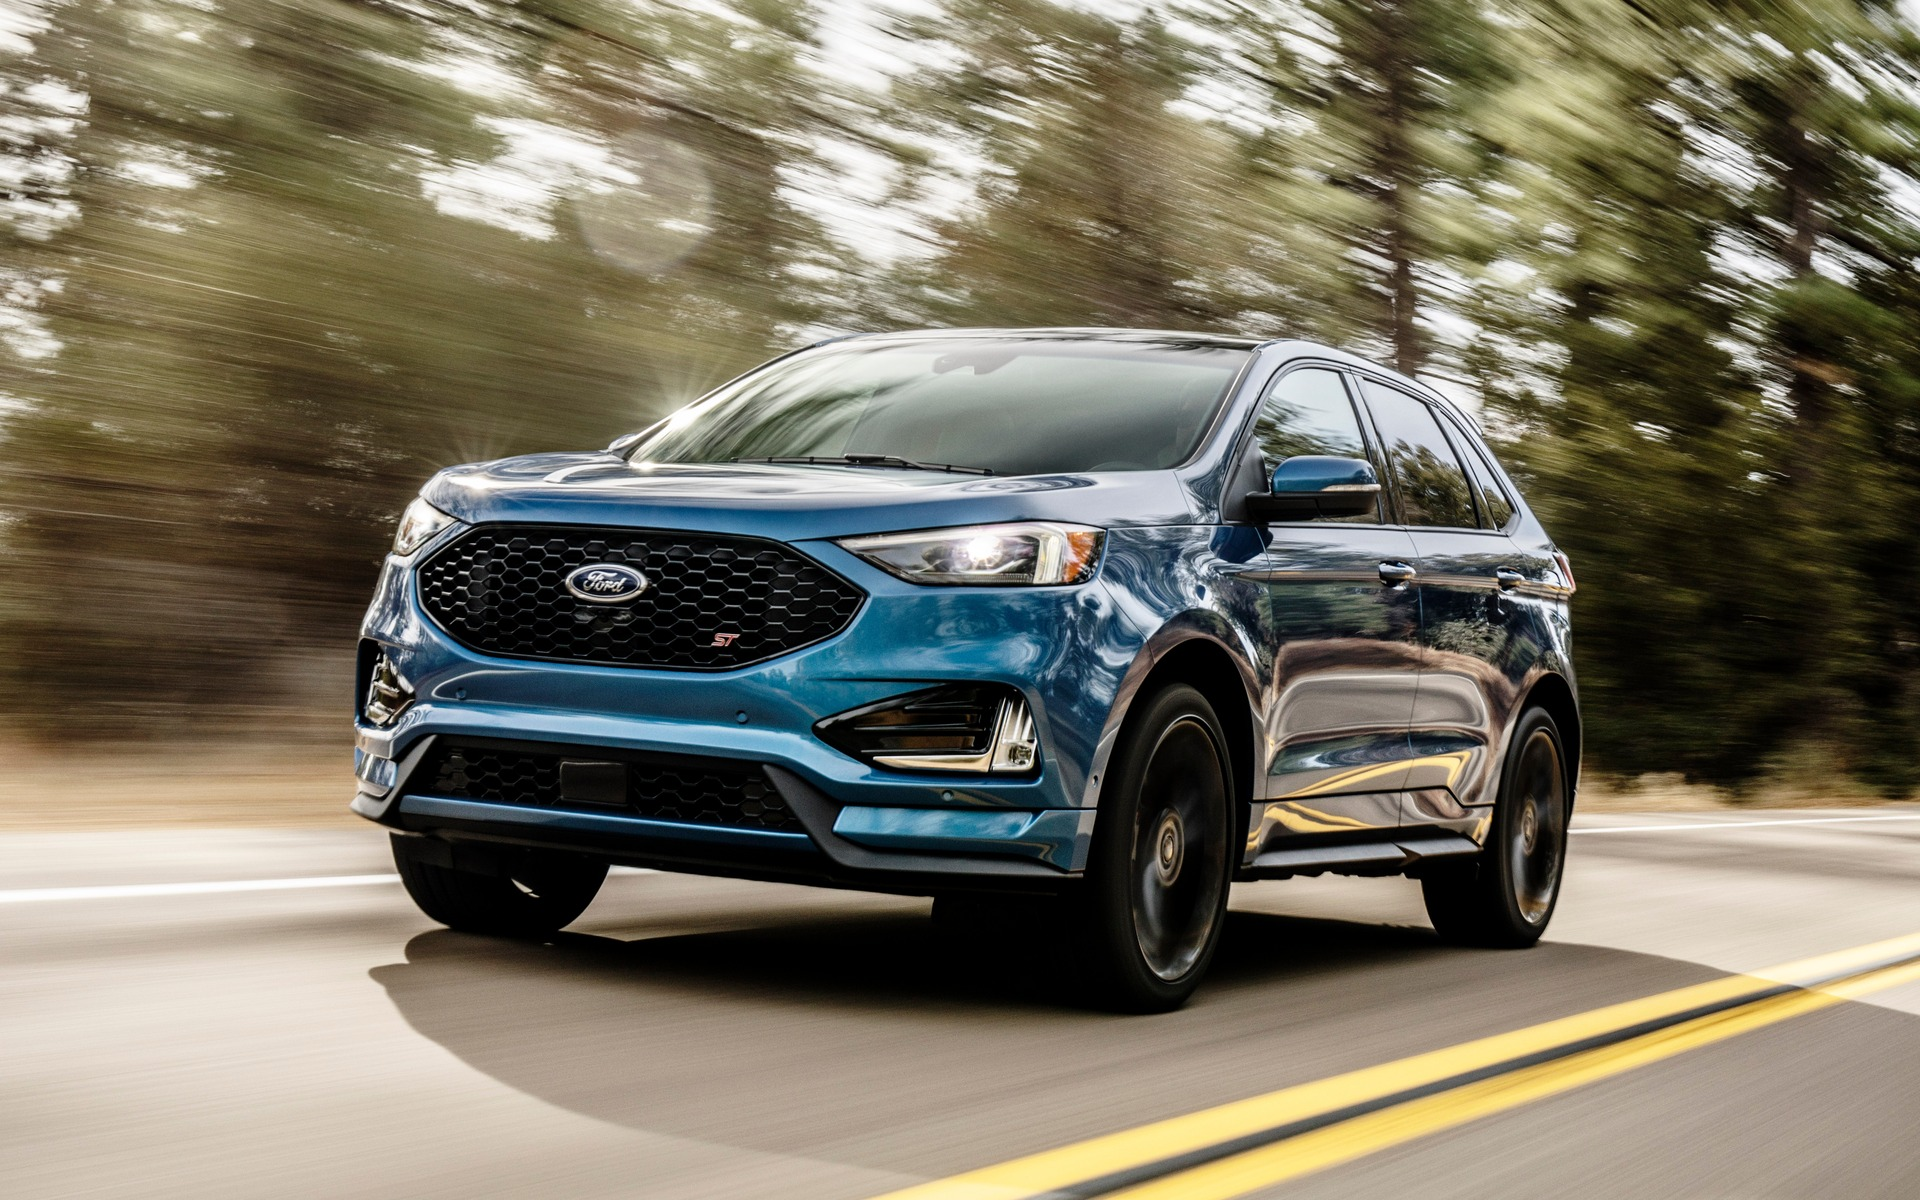 Artificial intelligence would help improve fuel consumption for the 2019 ford edge